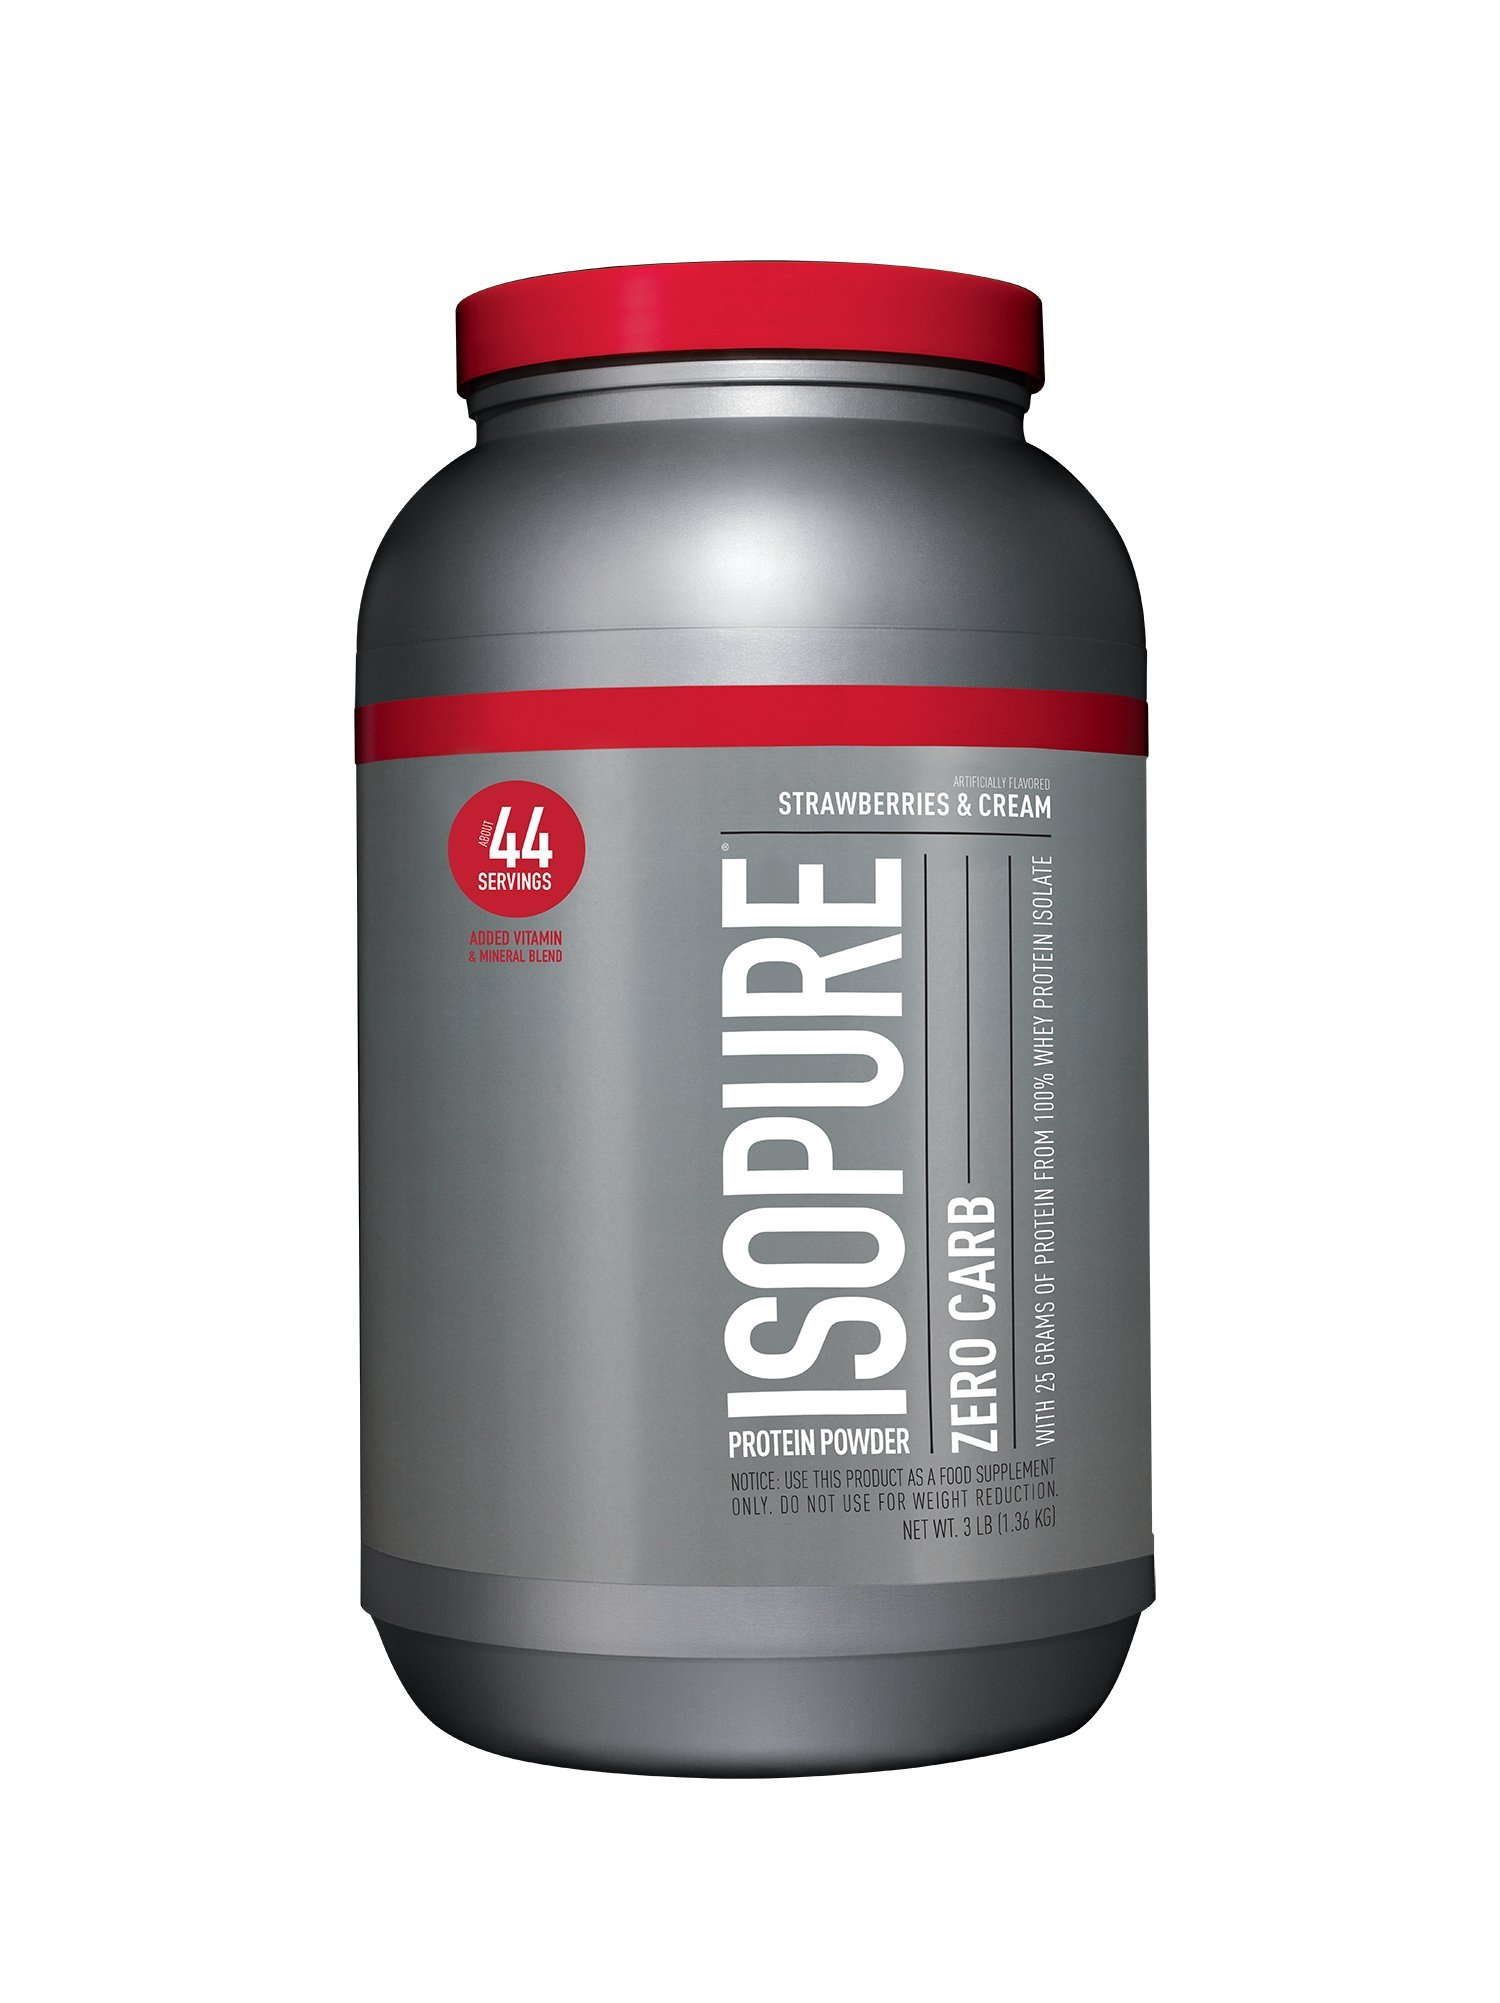 Isopure Zero Carb Protein Powder, 100% Whey Protein Isolate, Flavor: Strawberries & Cream, 3 Pounds (Packaging May Vary)